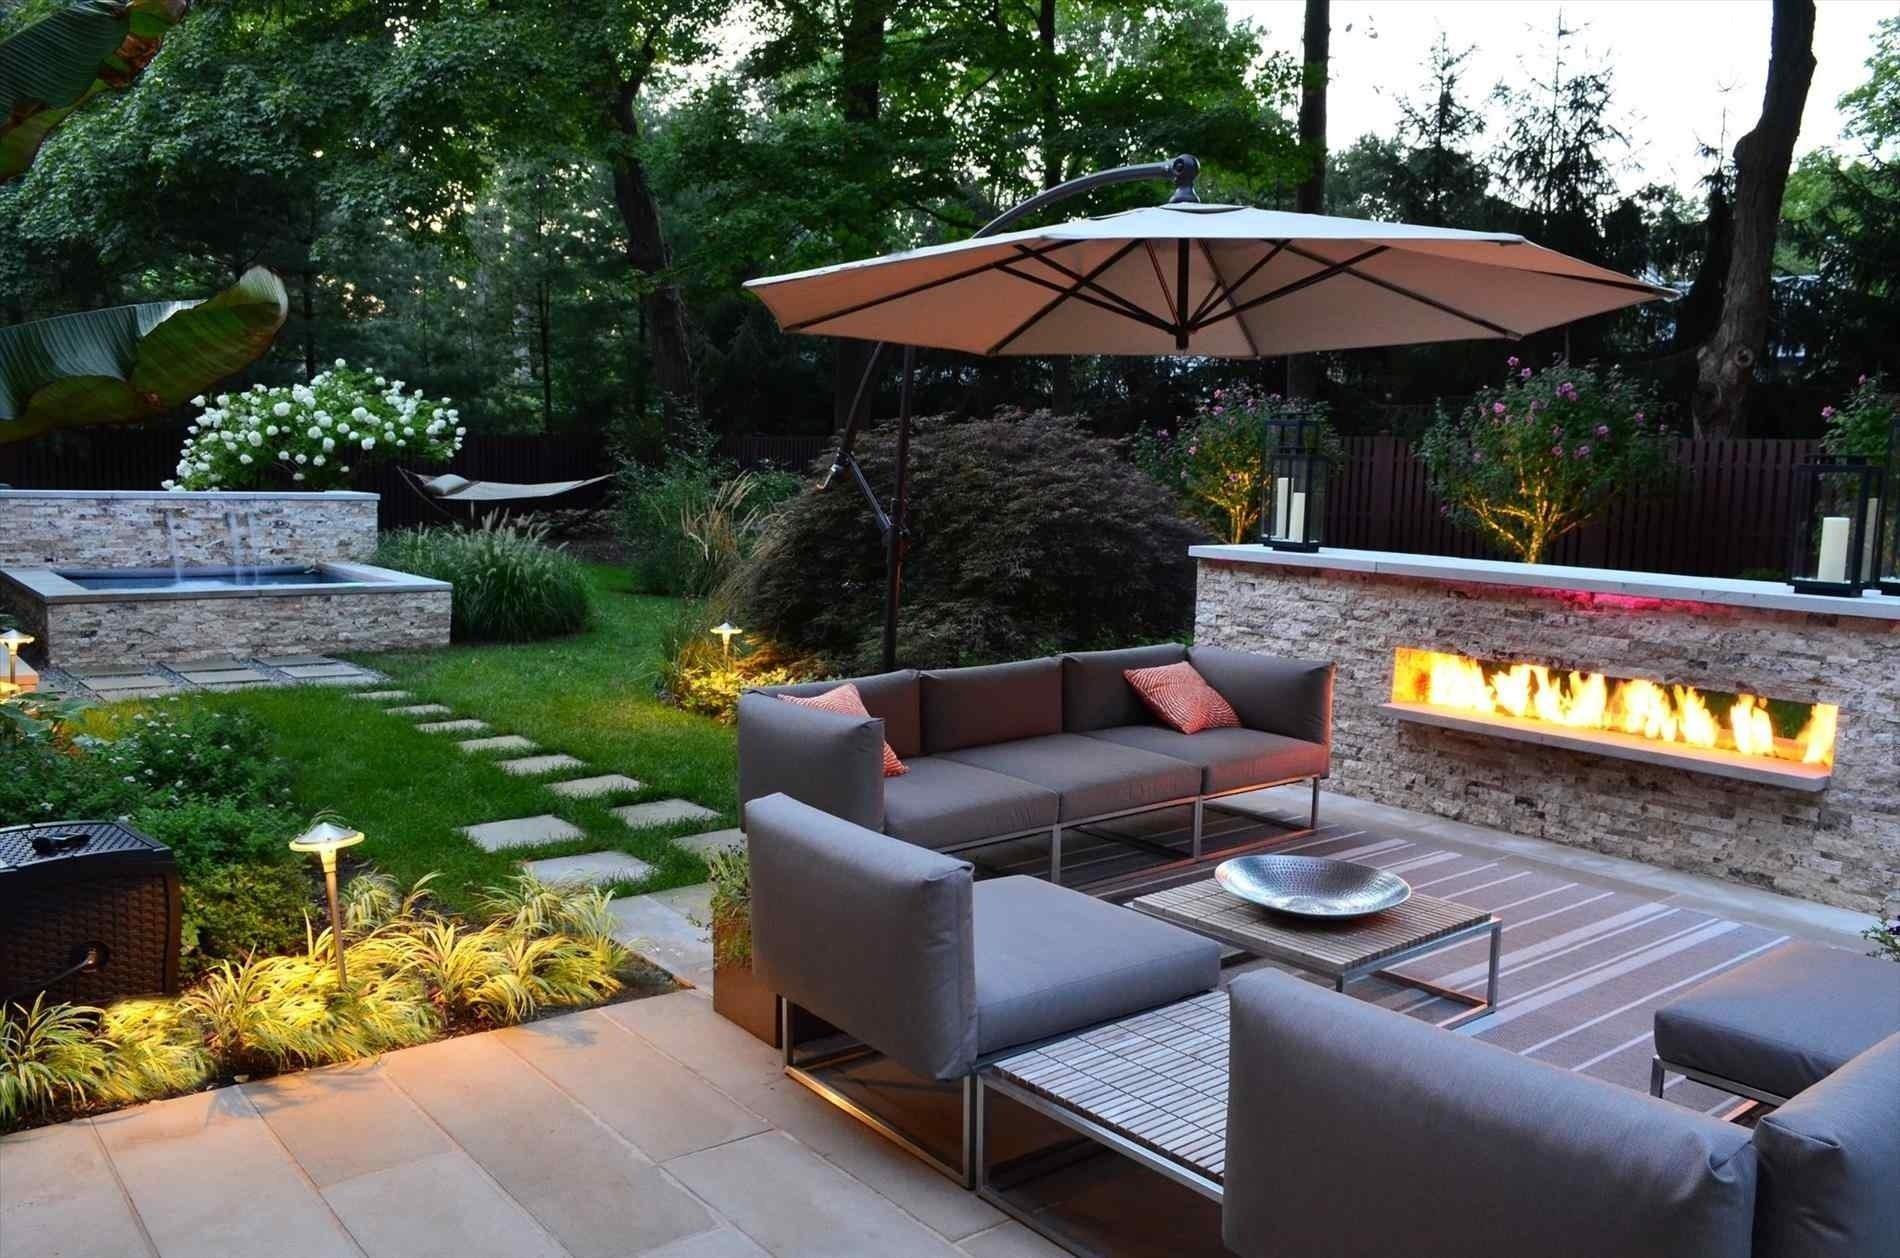 10 Perfect Outdoor Patio Ideas For Small Spaces the images collection of patio ideas for small spaces pool with hot 2020